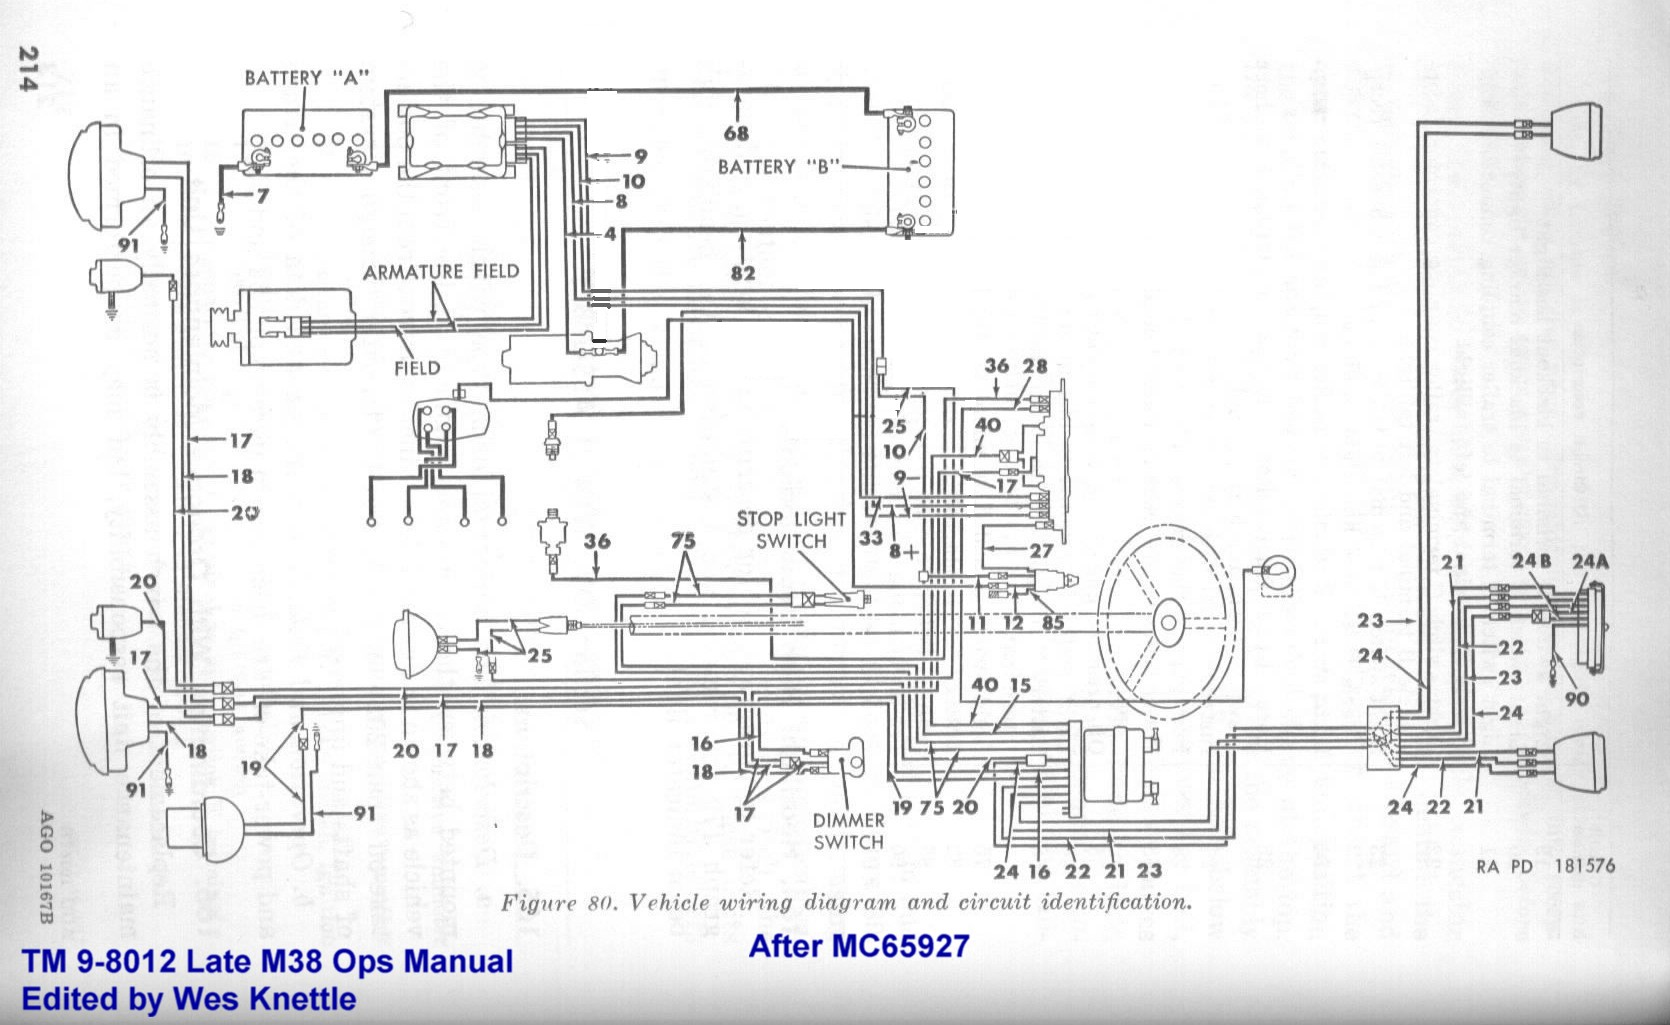 Willys M38 Wiring Diagram With Ignition Switch Wes K